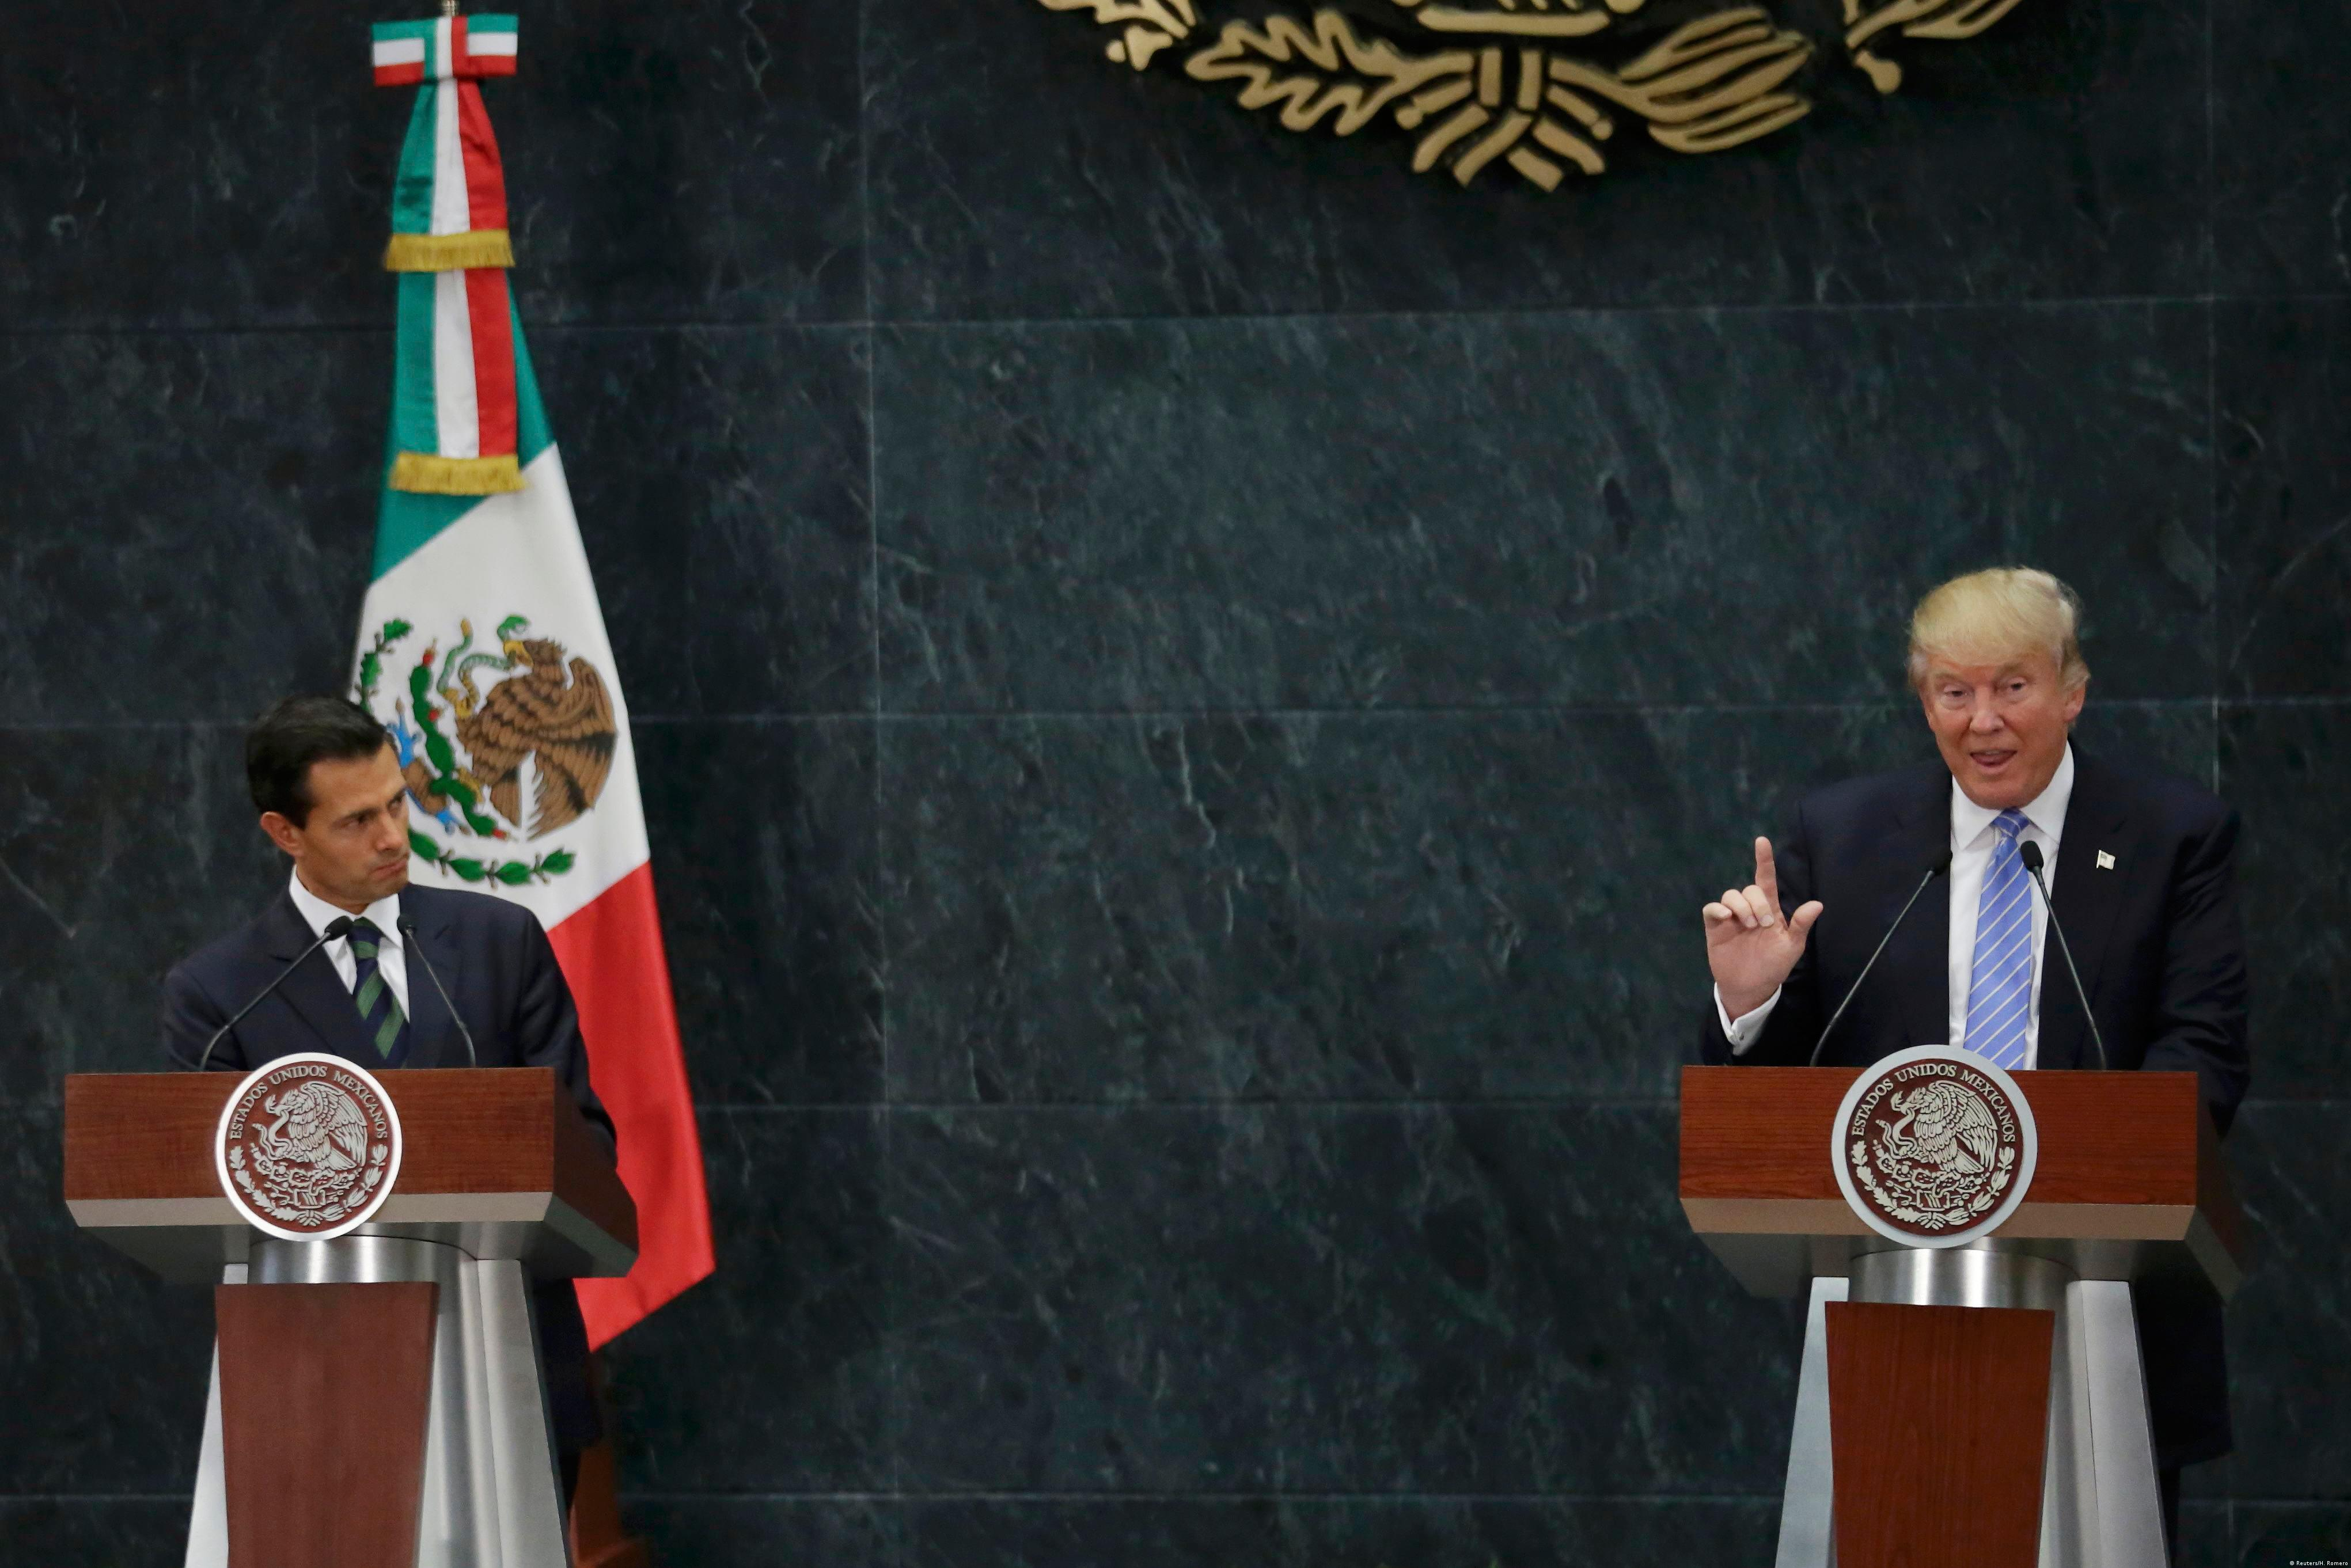 Mexican peso may slump to record low on Trump trade moves -traders